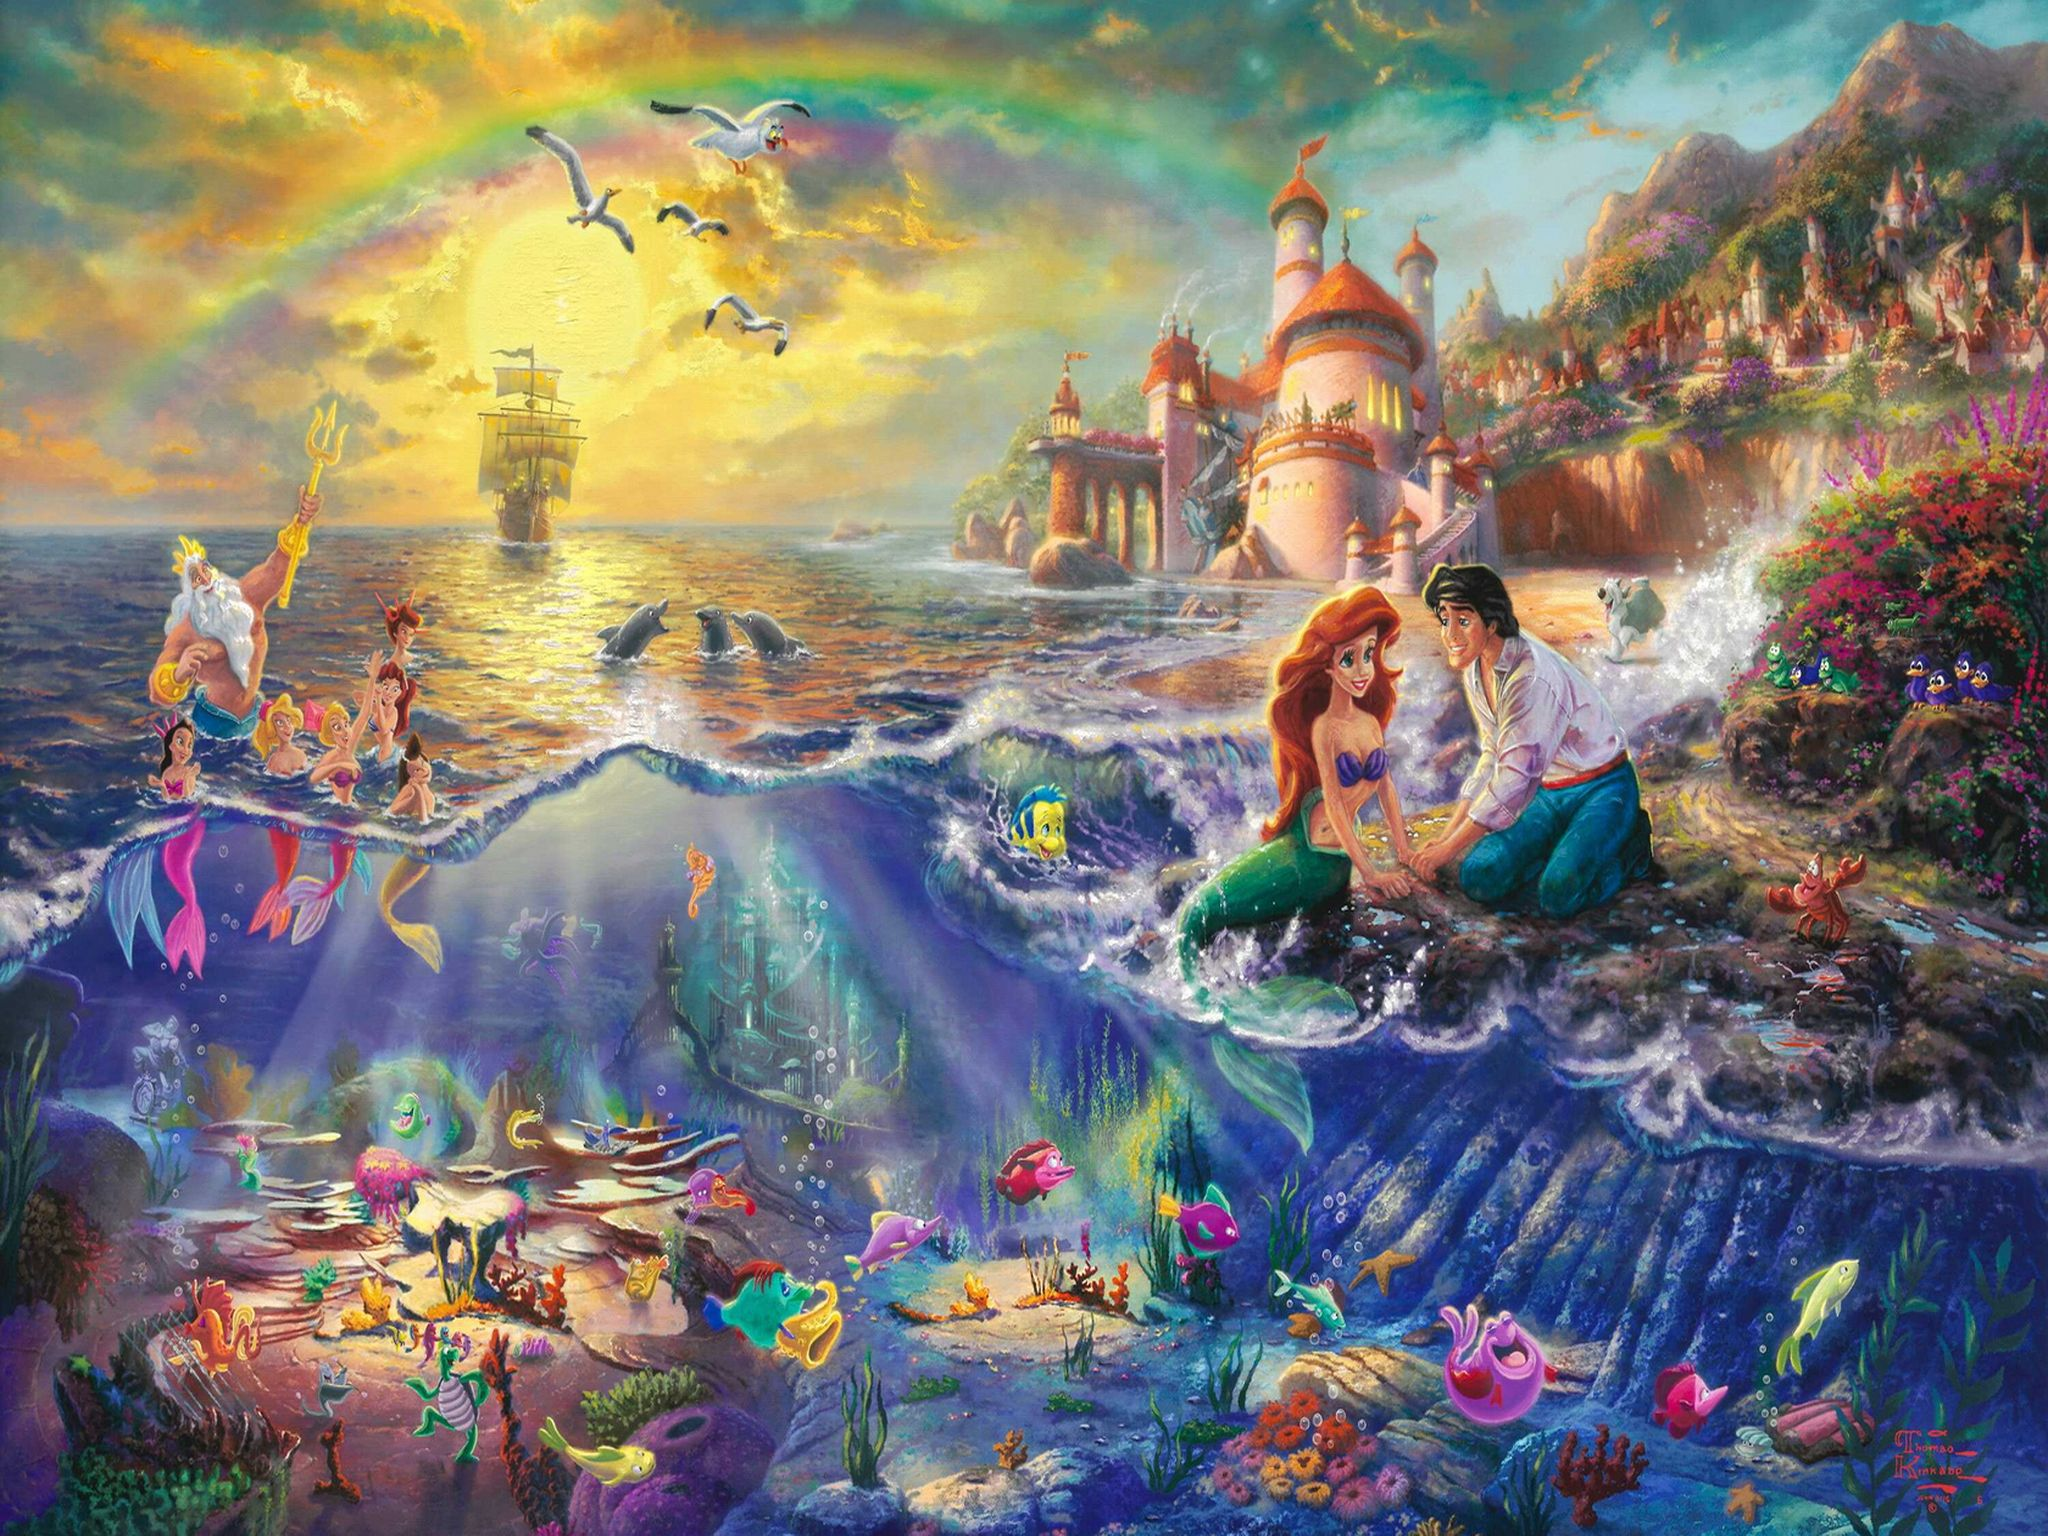 Thomas Kinkade Disney art the little mermaid thomas